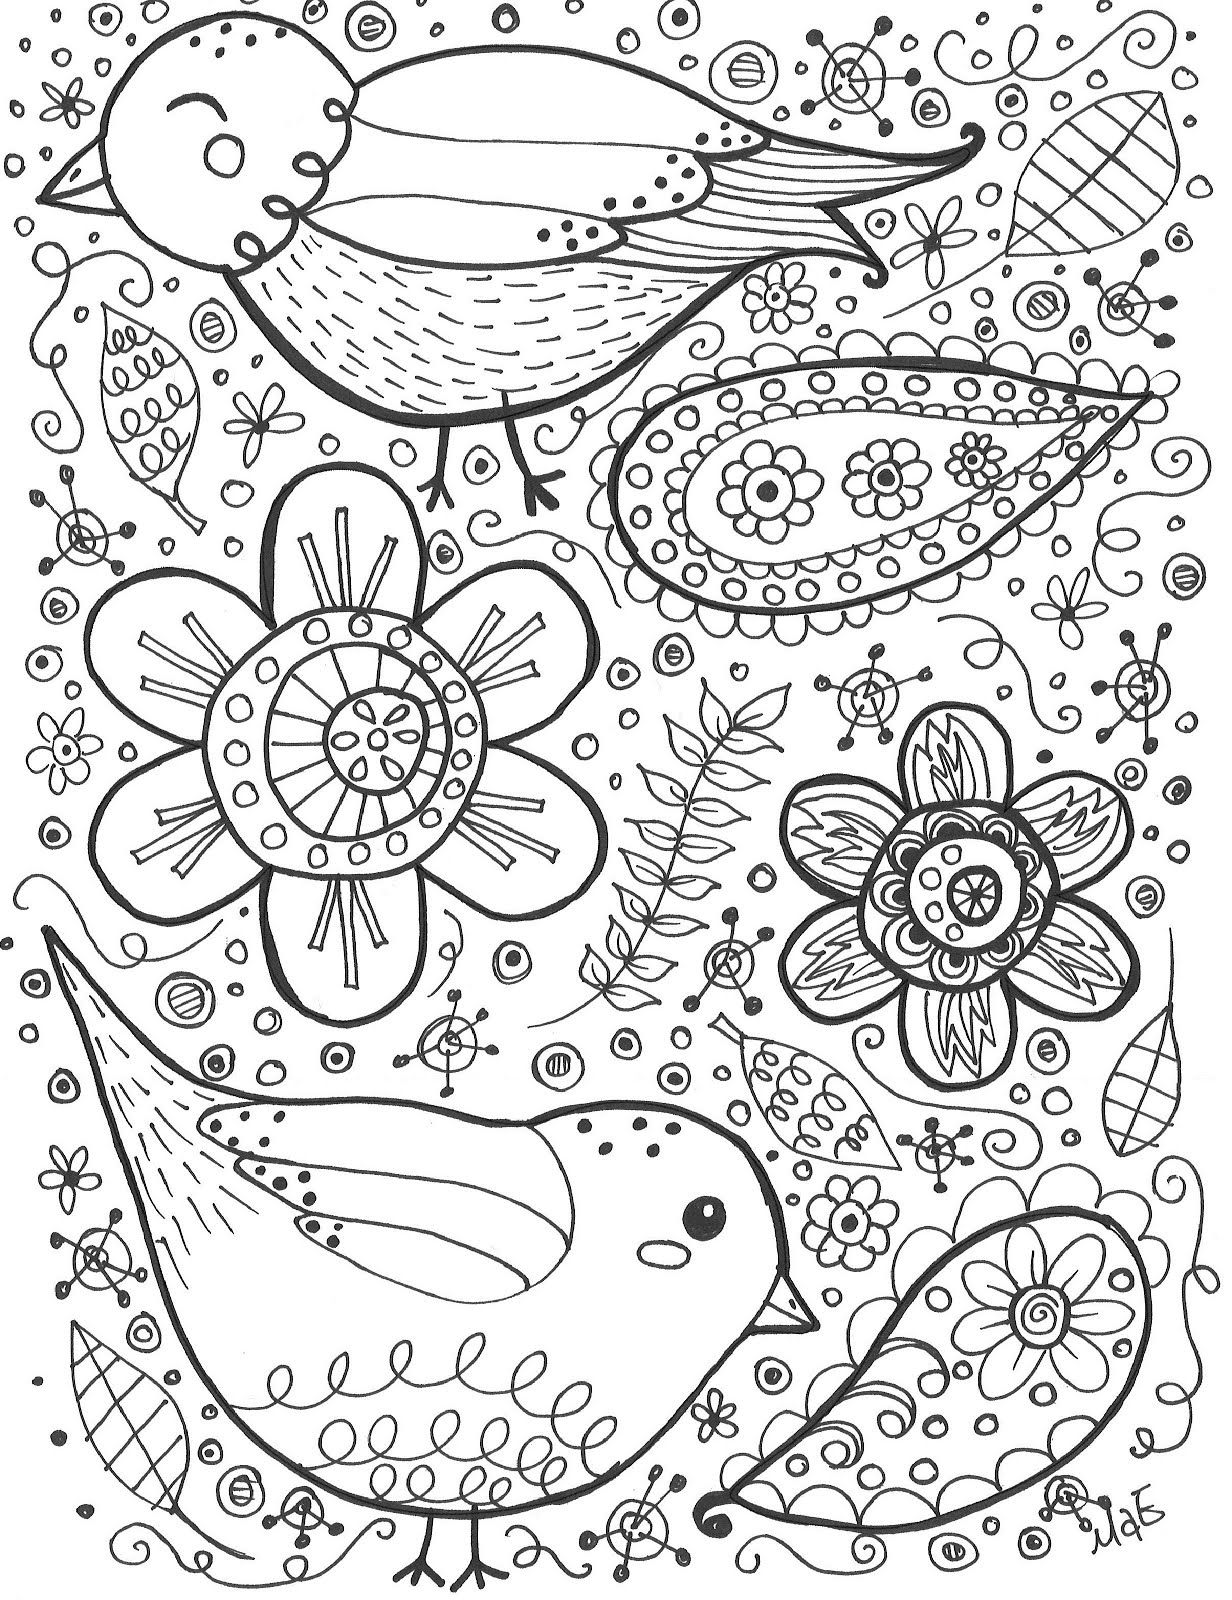 Free Coloring Page Free Coloring Pages Free Coloring Coloring Pages